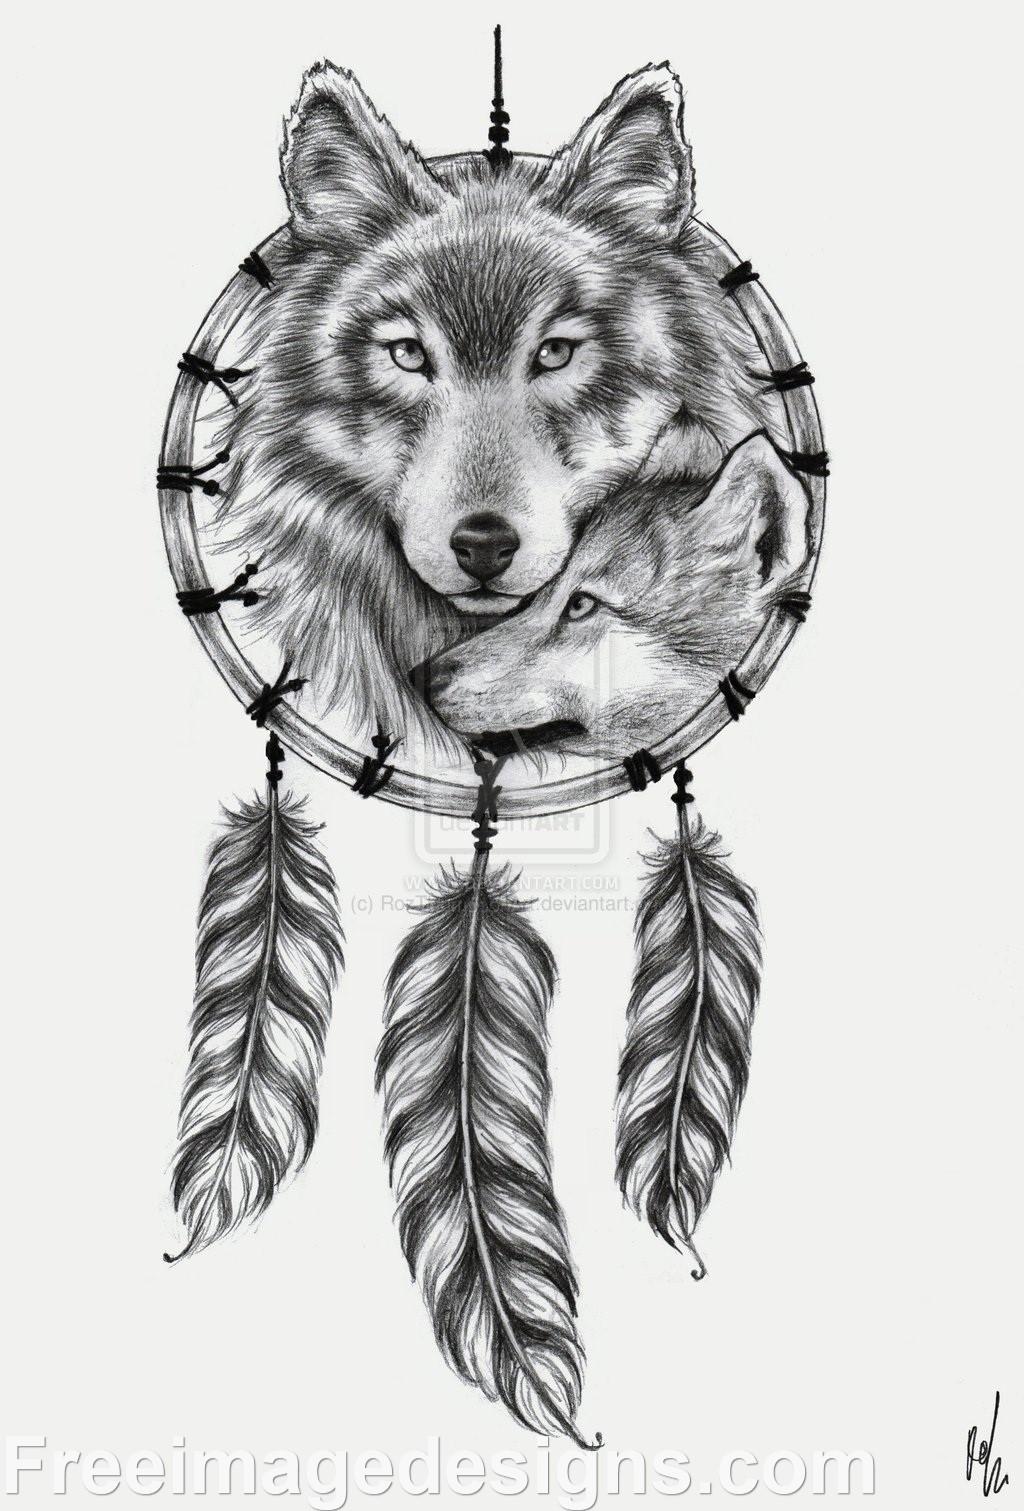 wolf dream catcher image design download free image tattoo designs freeimagedesigns com. Black Bedroom Furniture Sets. Home Design Ideas